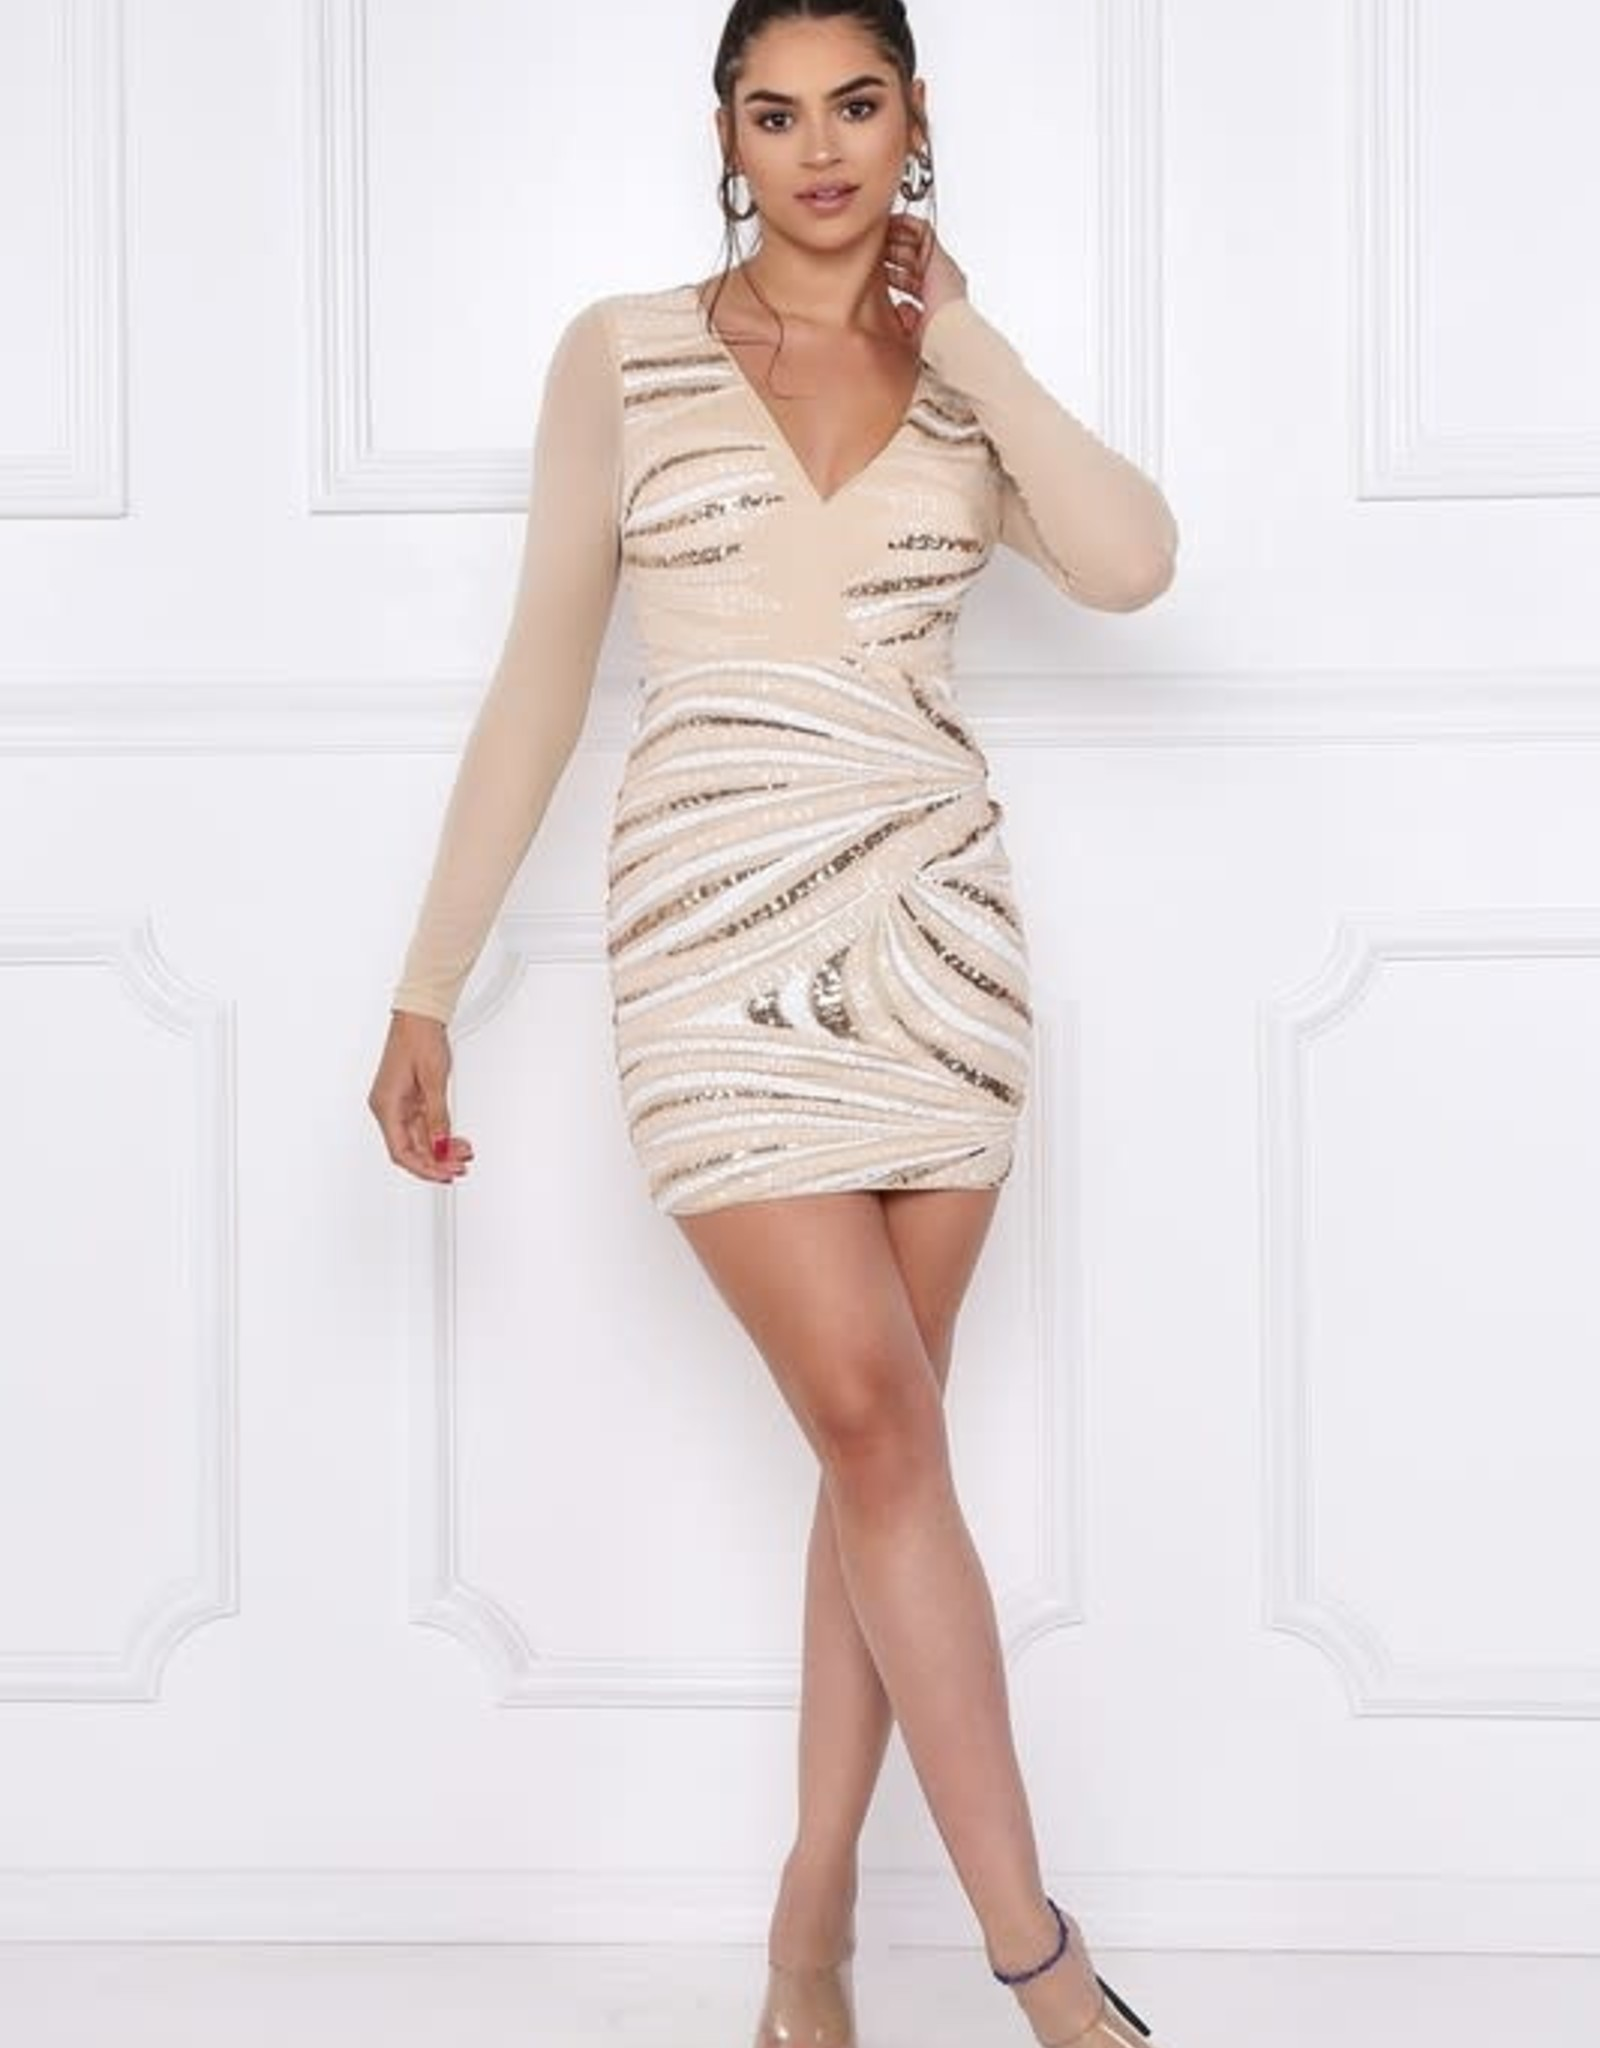 Simply Irresistible Sequin Dress